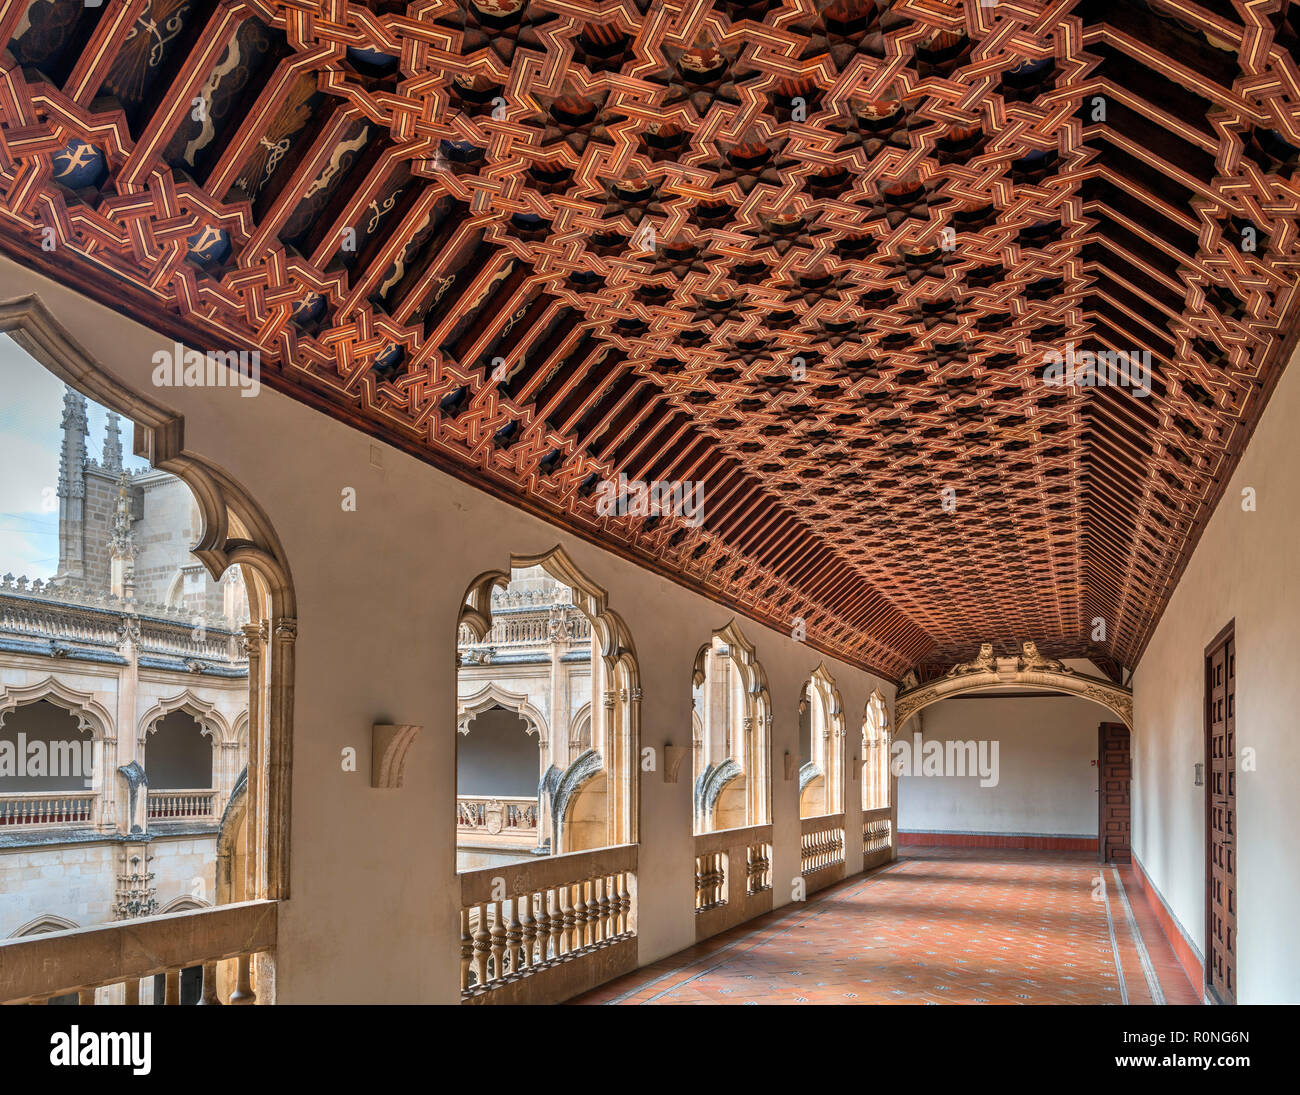 Mudejar ceiling in the Upper Cloisters of the Monastery of San Juan de los Reyes, Toledo, Castilla-La Mancha, Spain - Stock Image